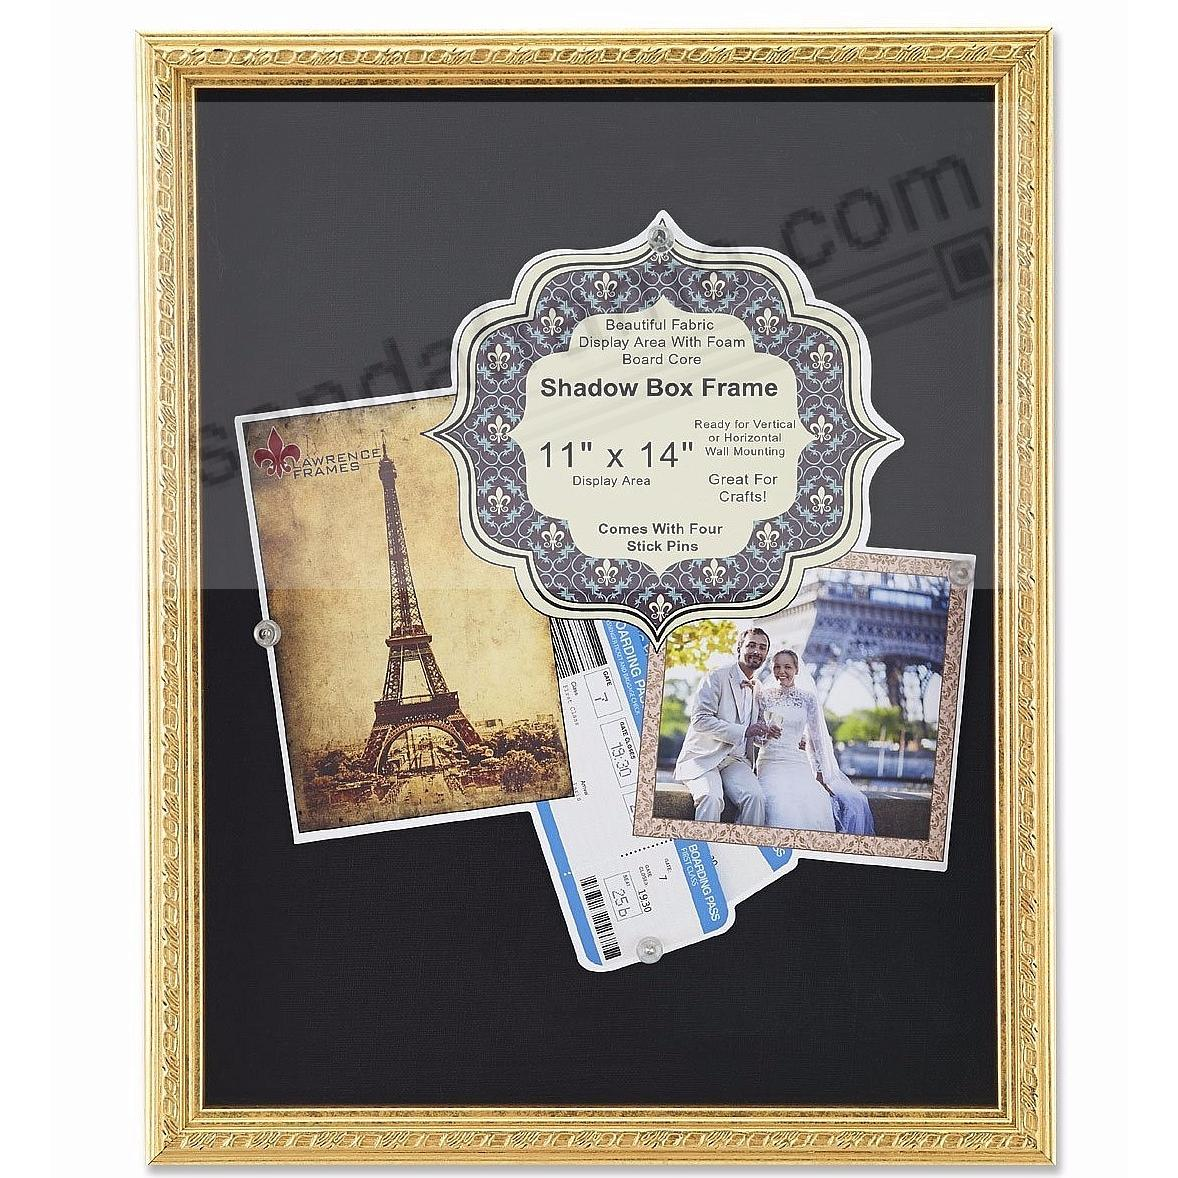 Gold Deep Craft Frame with Decorative Border Trim 11x14 ShadowBox by Lawrence®